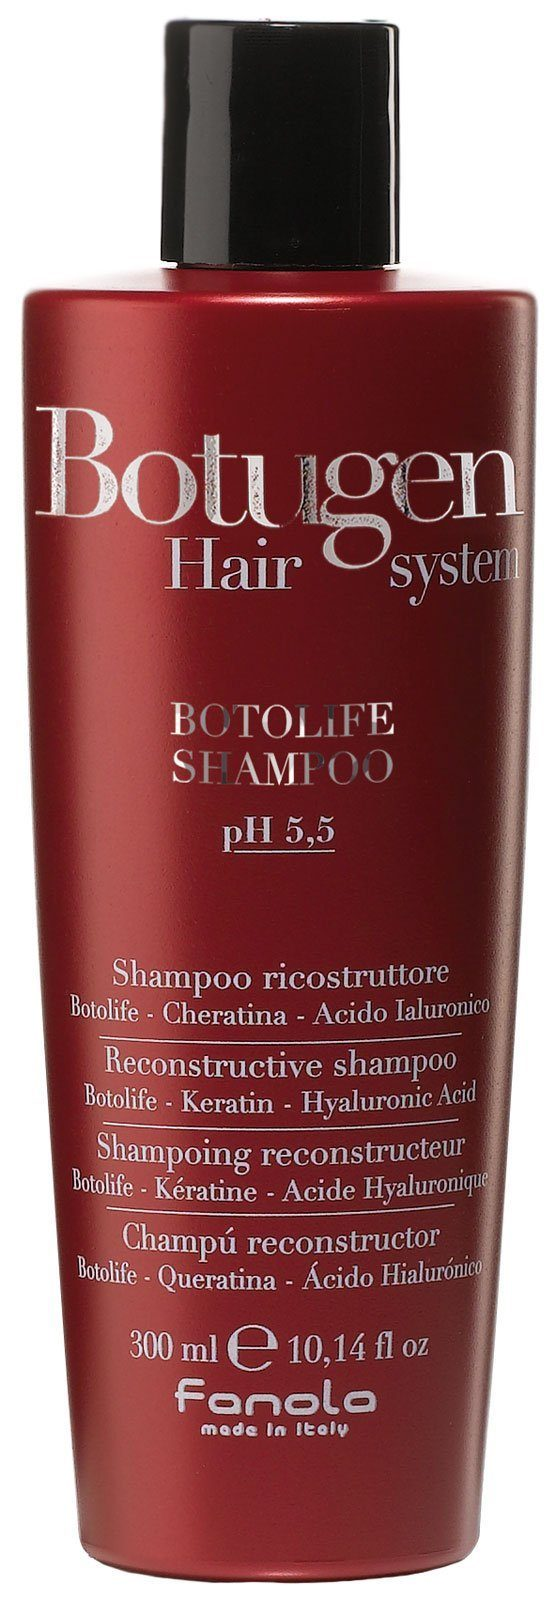 Fanola Botugen Maintenance Kit Hair Treatments Fanola